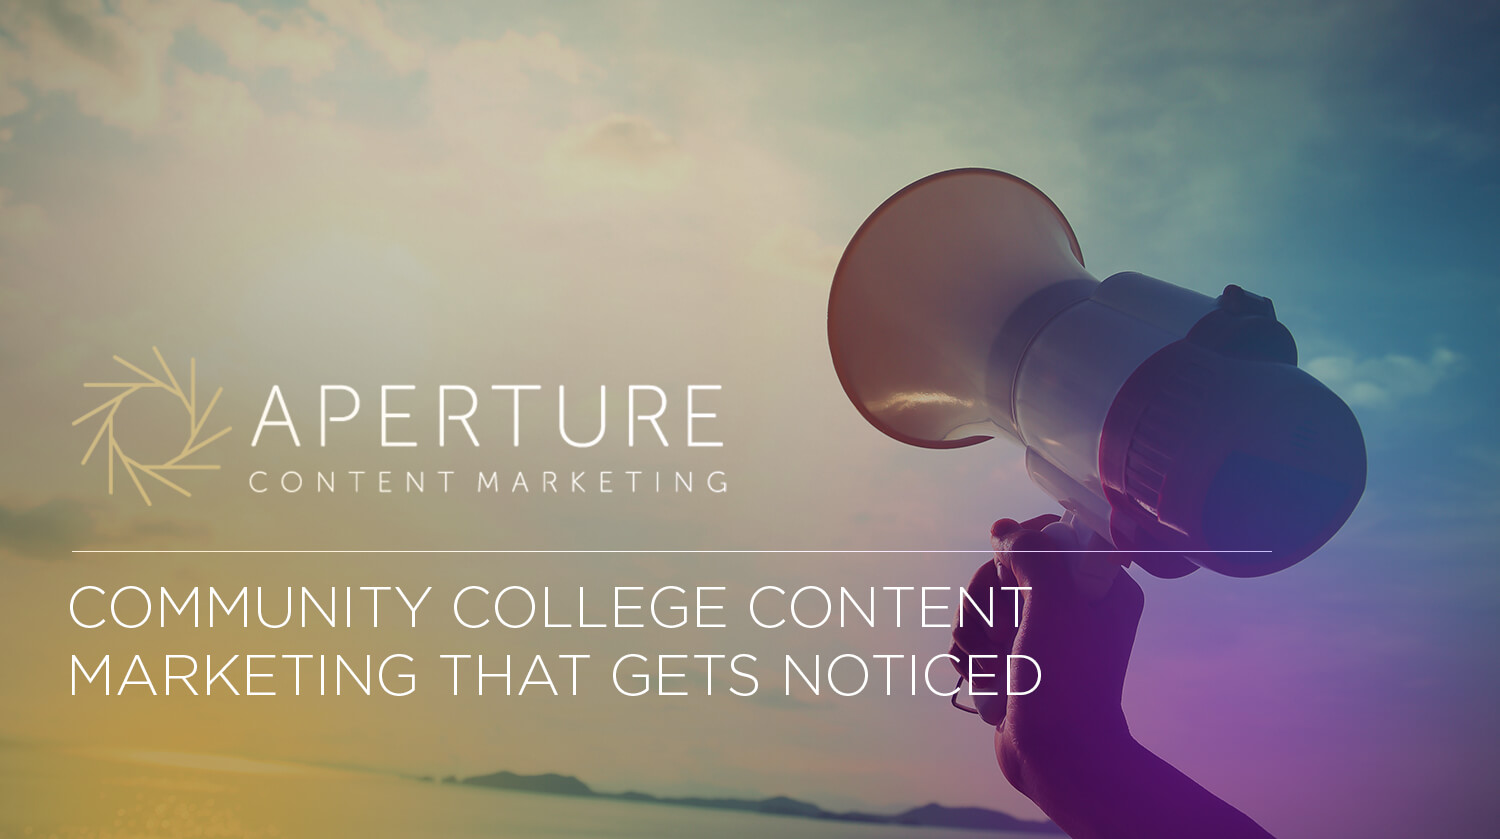 Community College Content Marketing that Gets Noticed